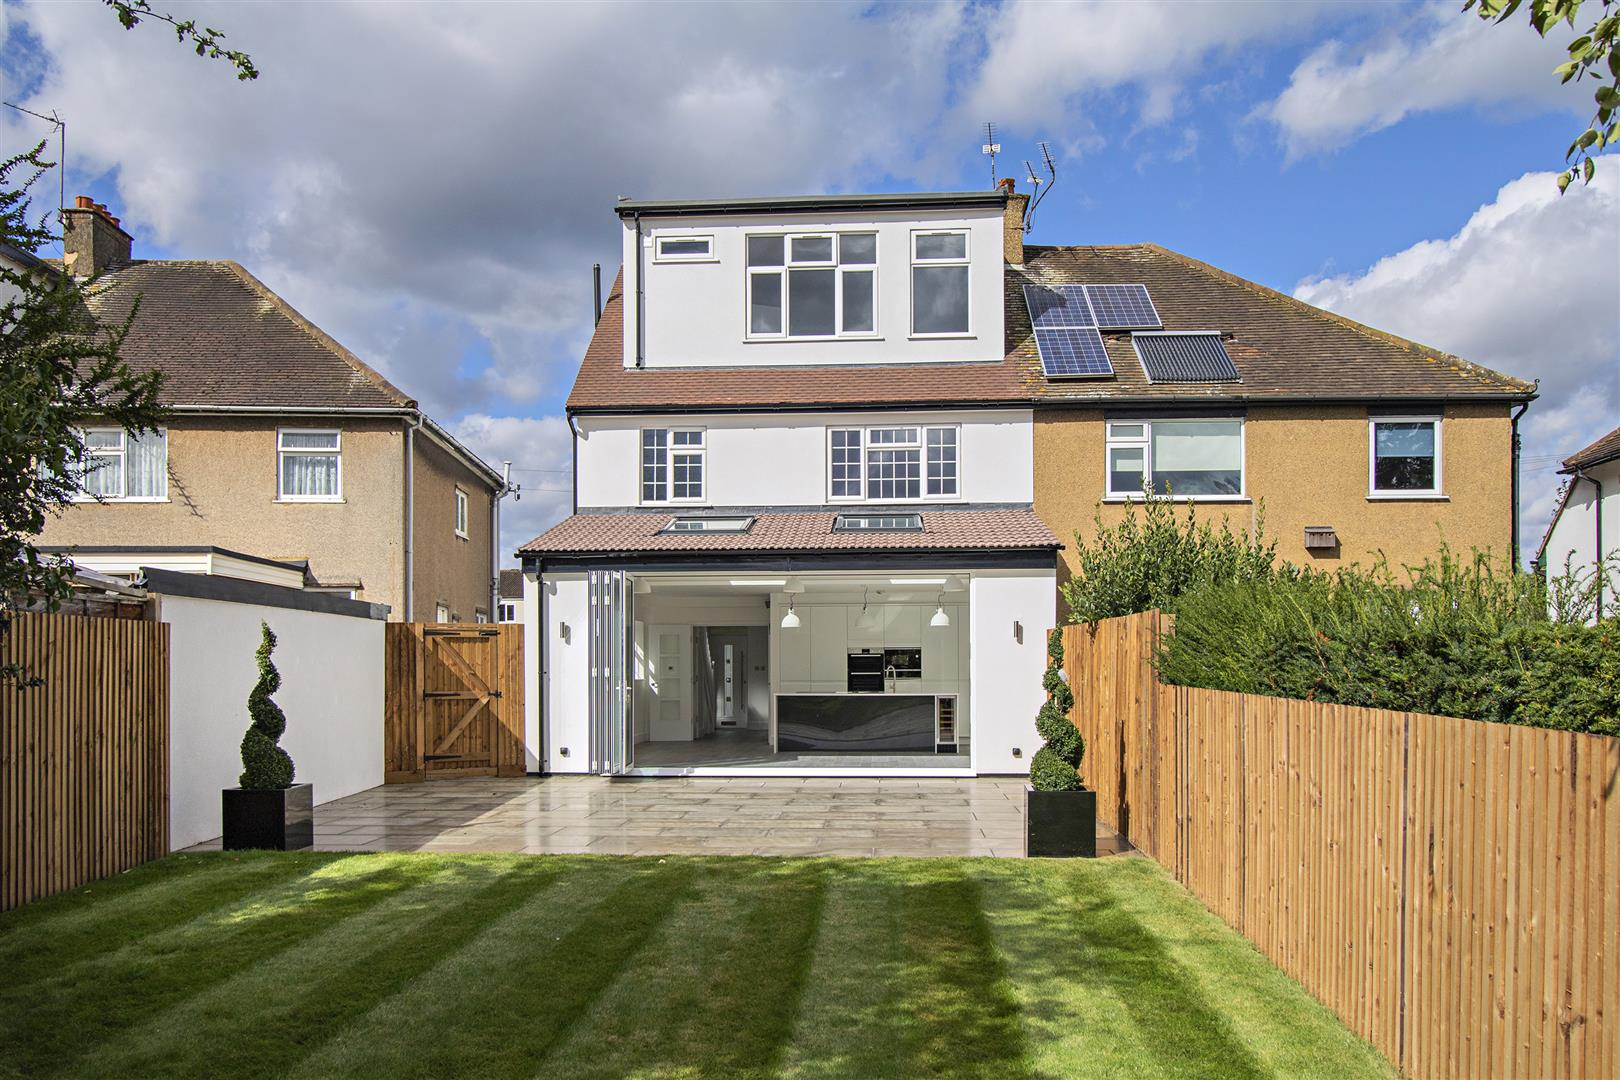 4 bed to rent in Loom Lane, Radlett - (Property Image 13)